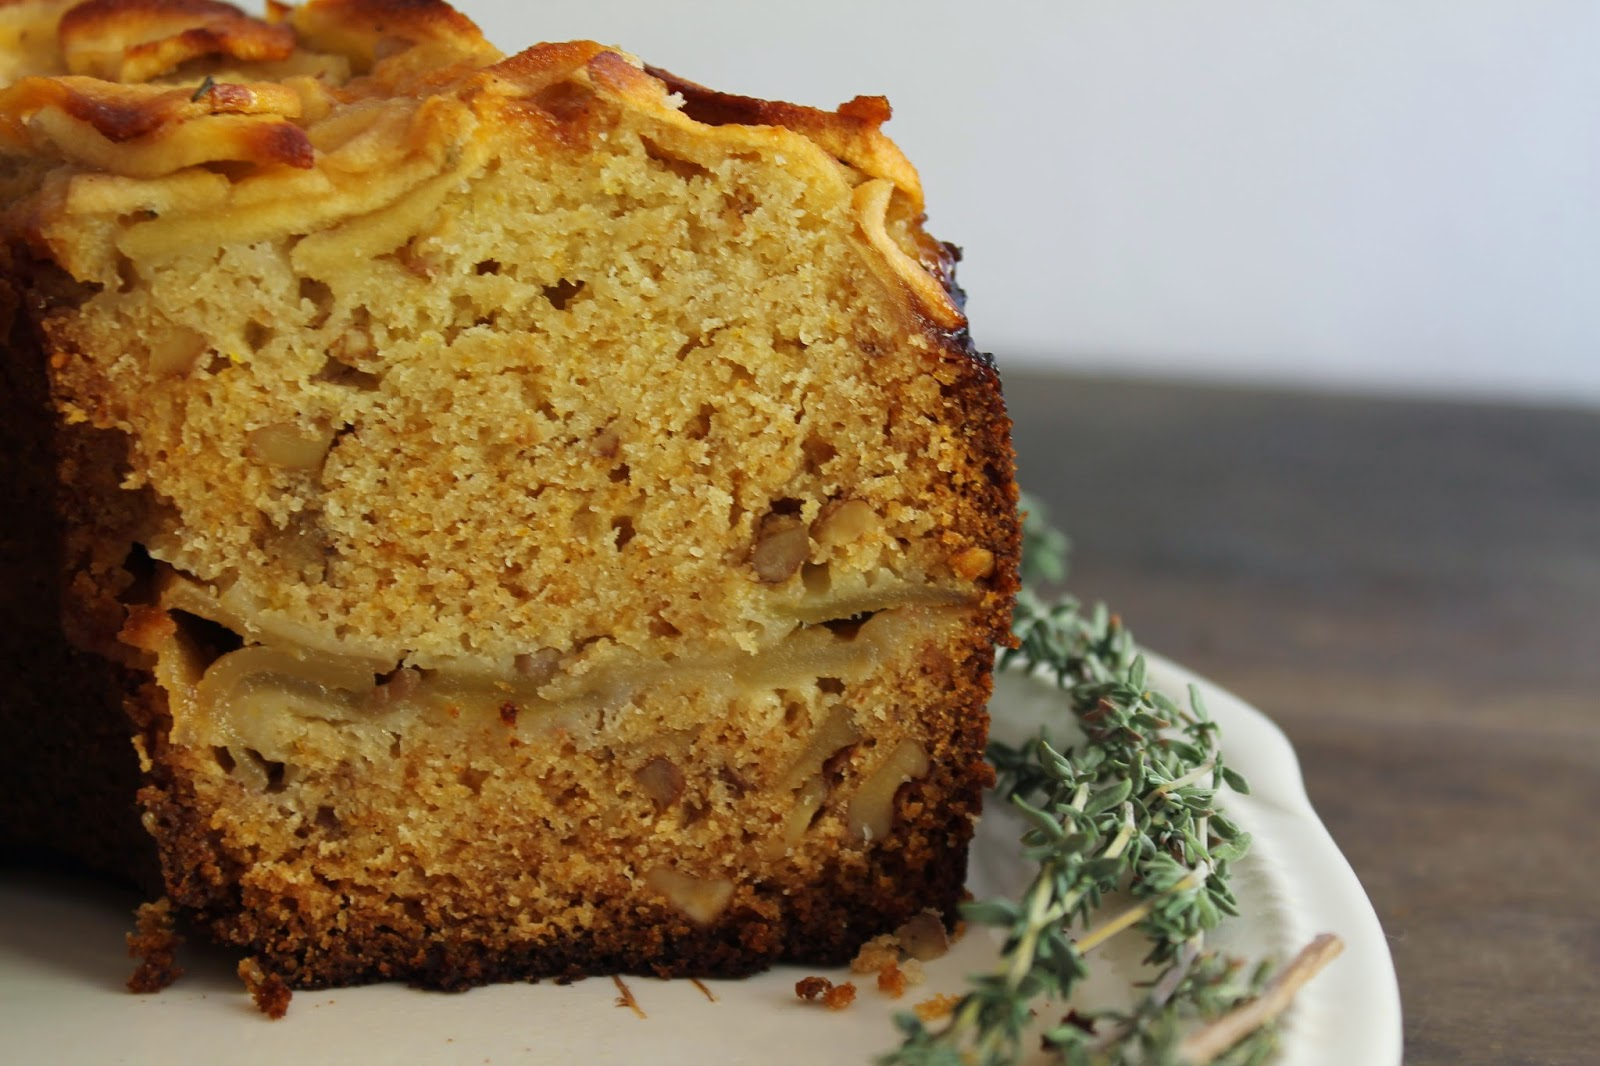 Apple Cake with Cinnamon, Thyme, and Rose